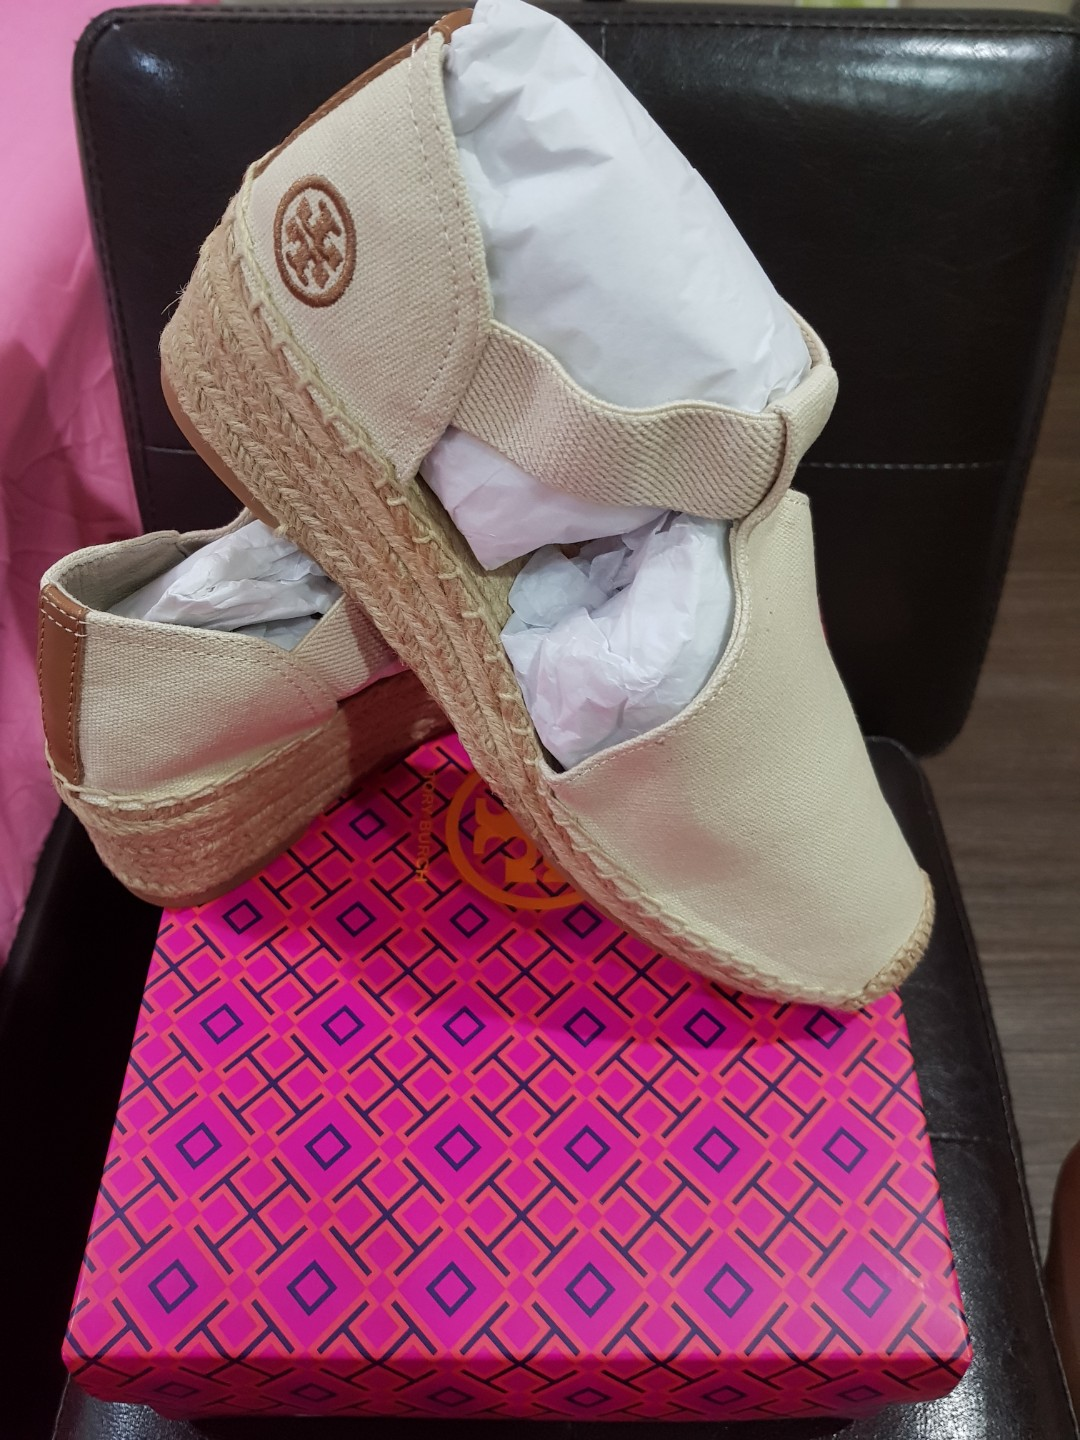 BNIB Authentic Tory Burch Espadrille canvas Catalina wedge, size 8.5